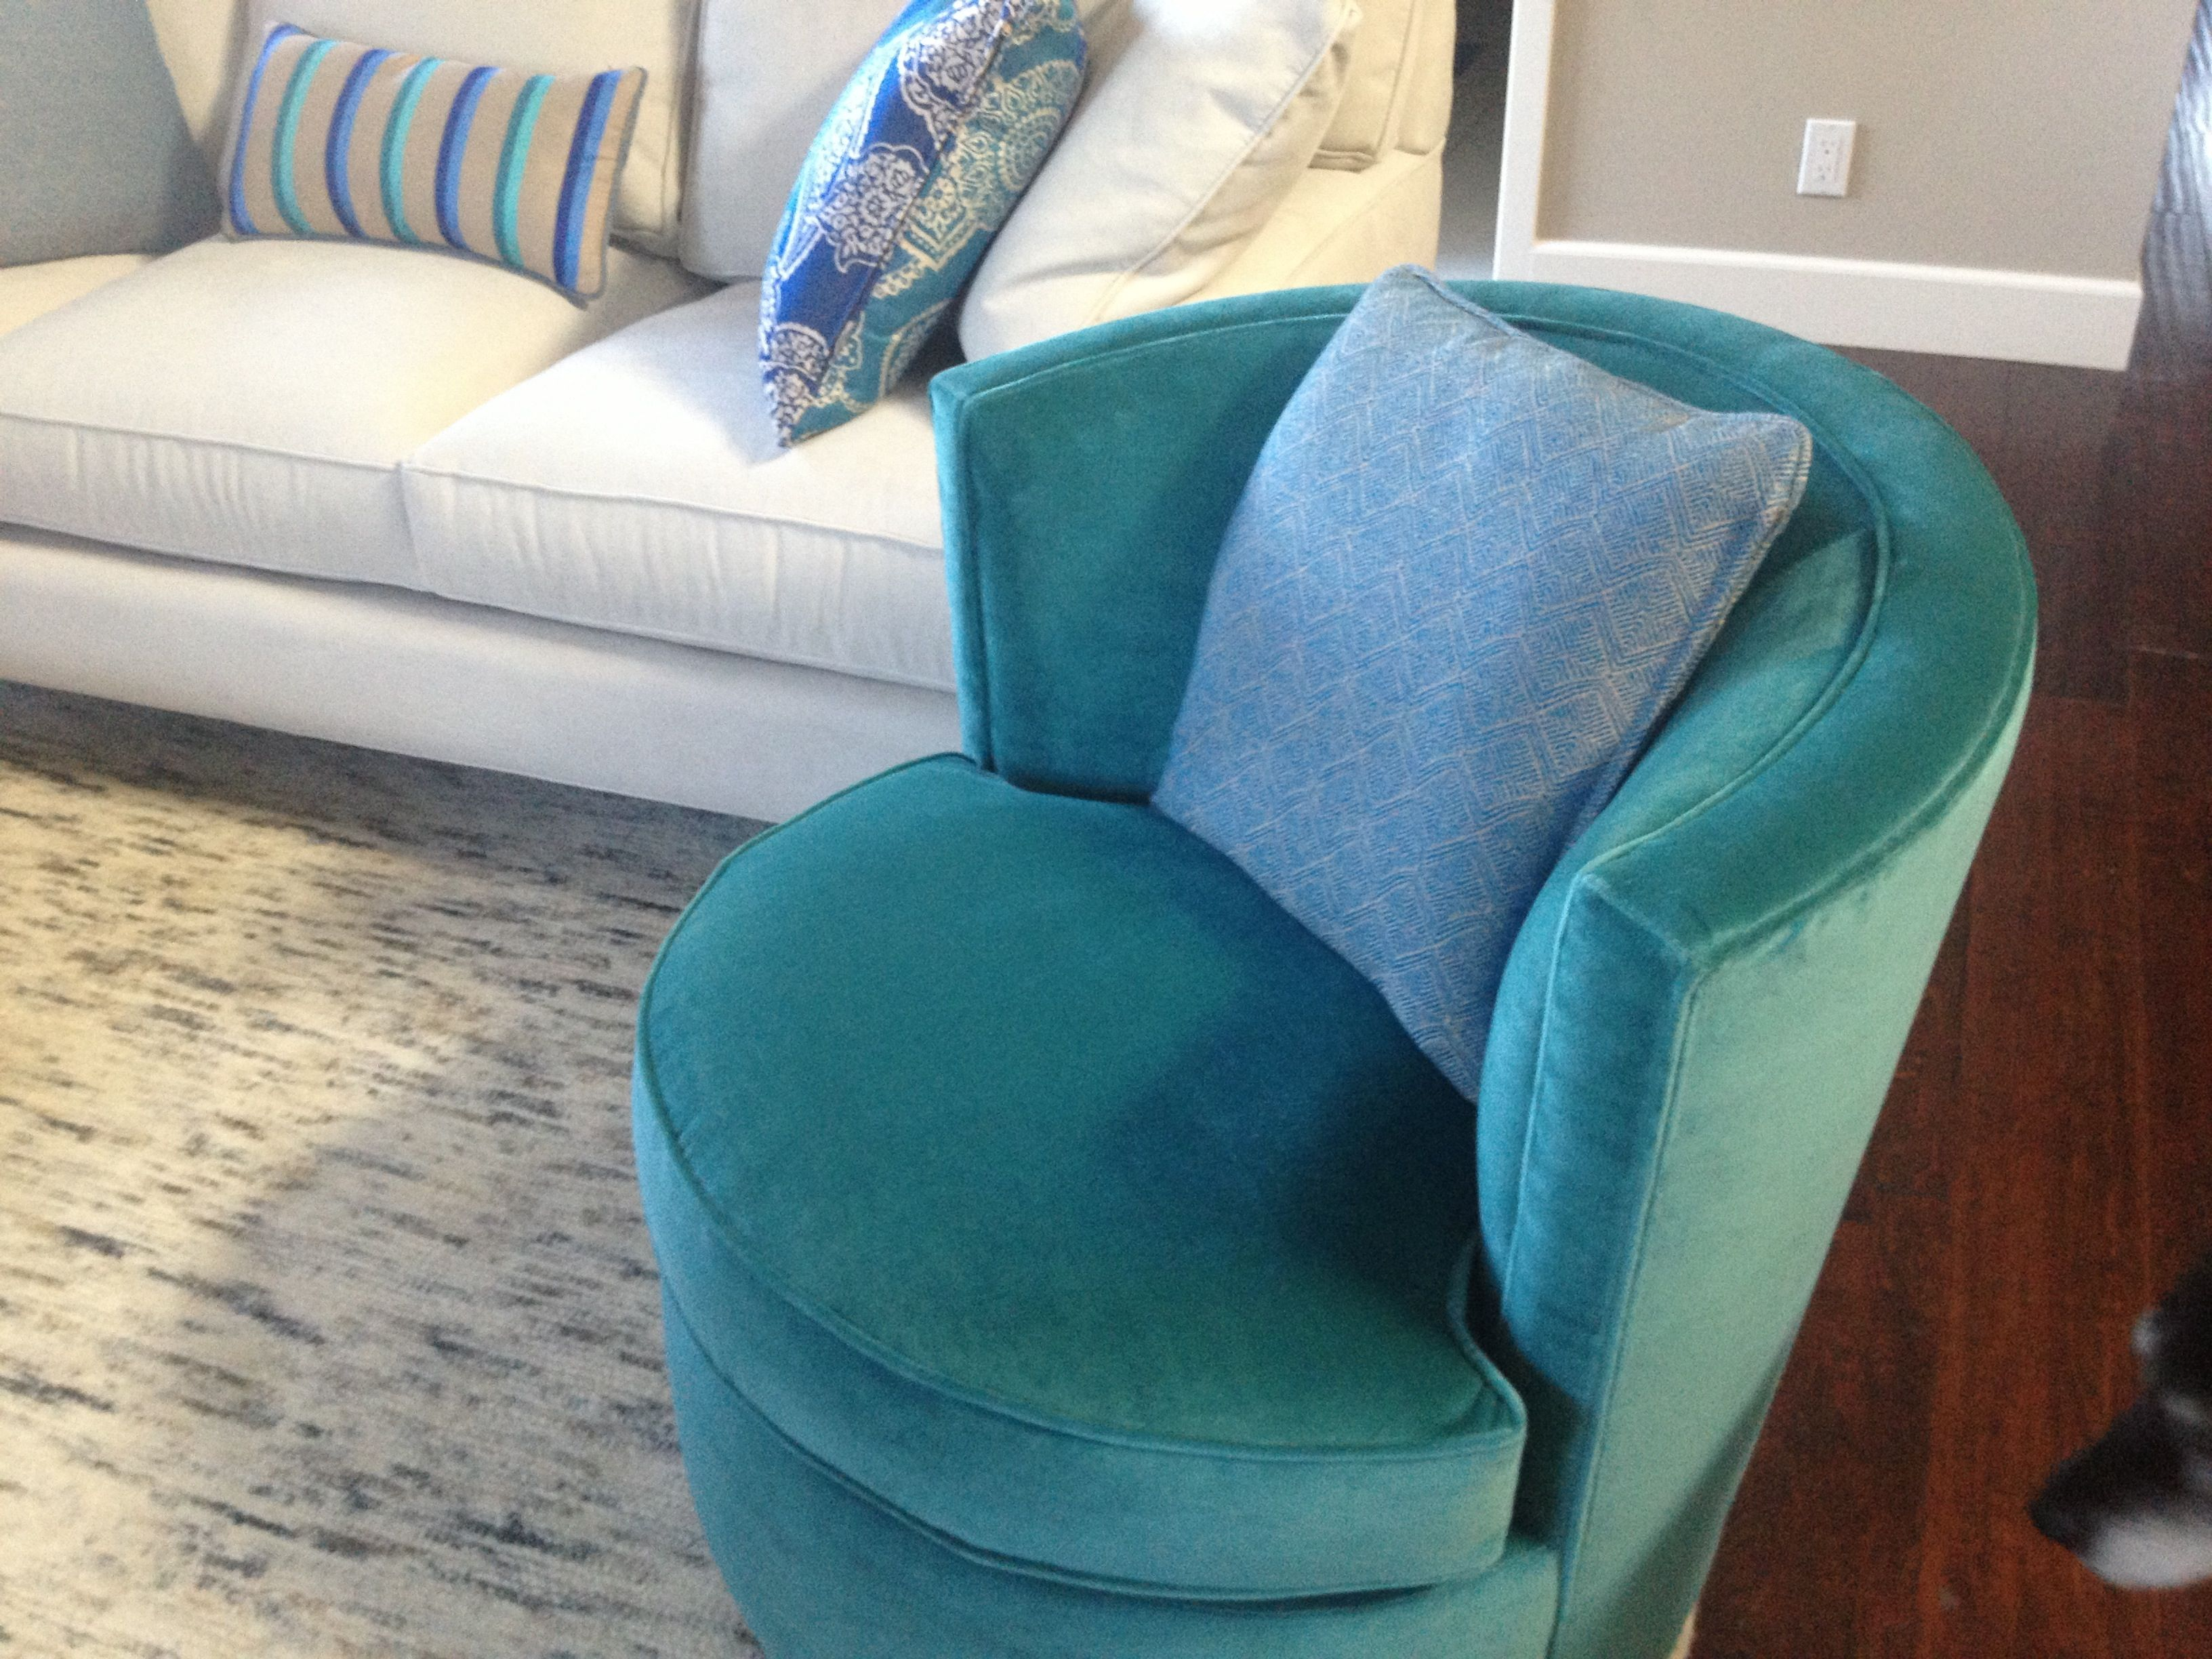 Otis Teal Swivel Chair Also Room And Board With Another Custom